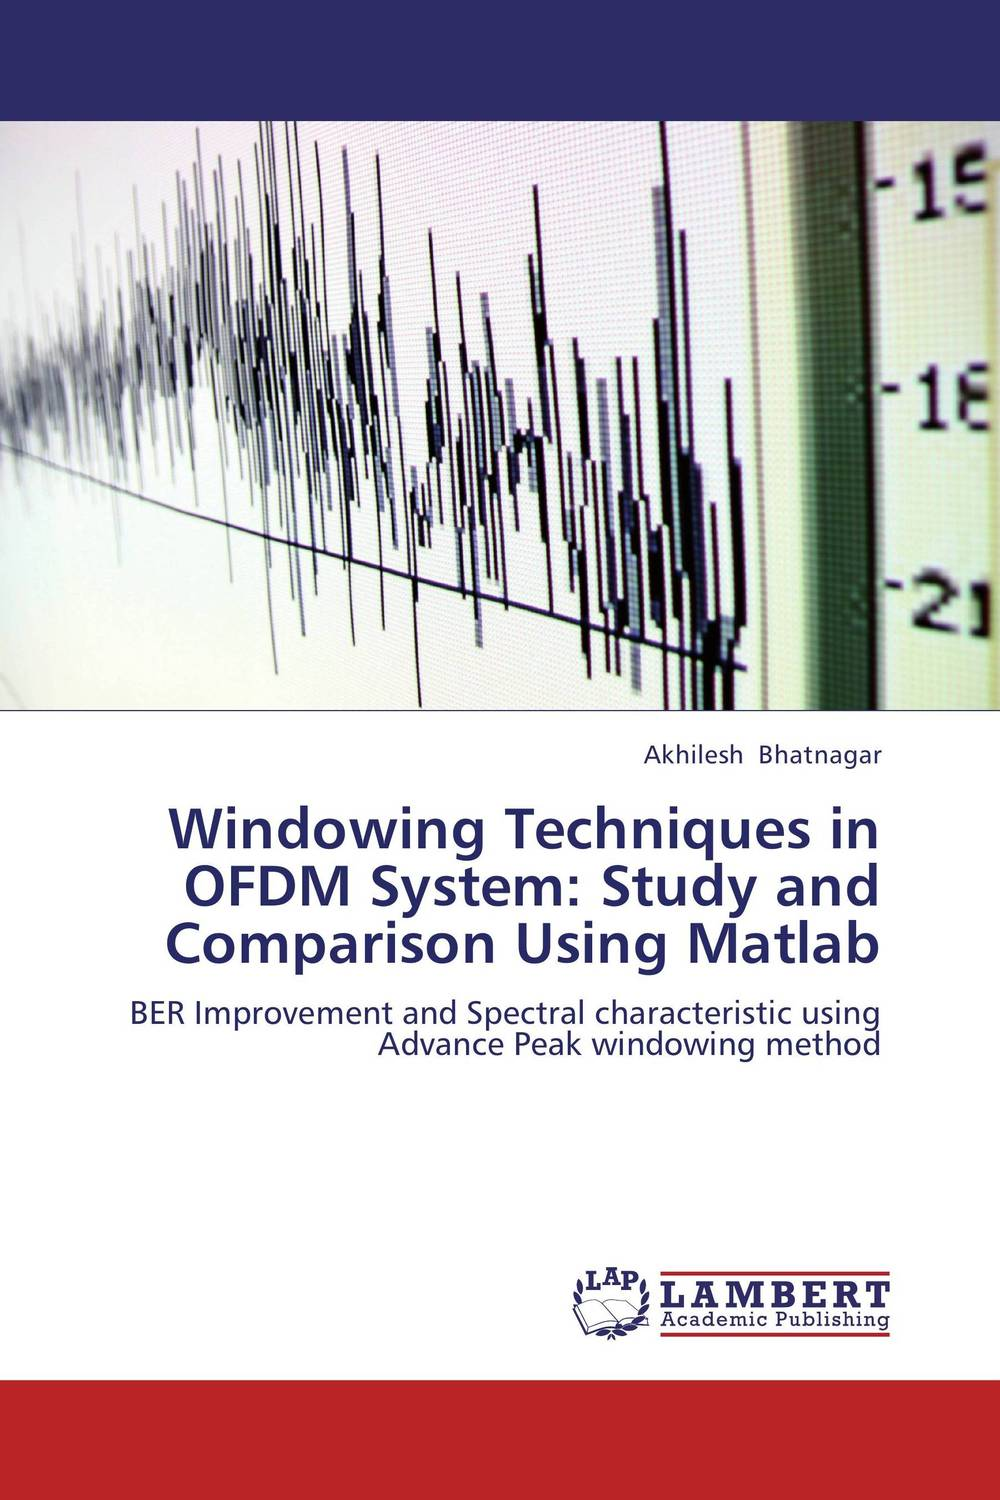 Windowing Techniques in OFDM System: Study and Comparison Using Matlab simulation of atm using elliptic curve cryptography in matlab